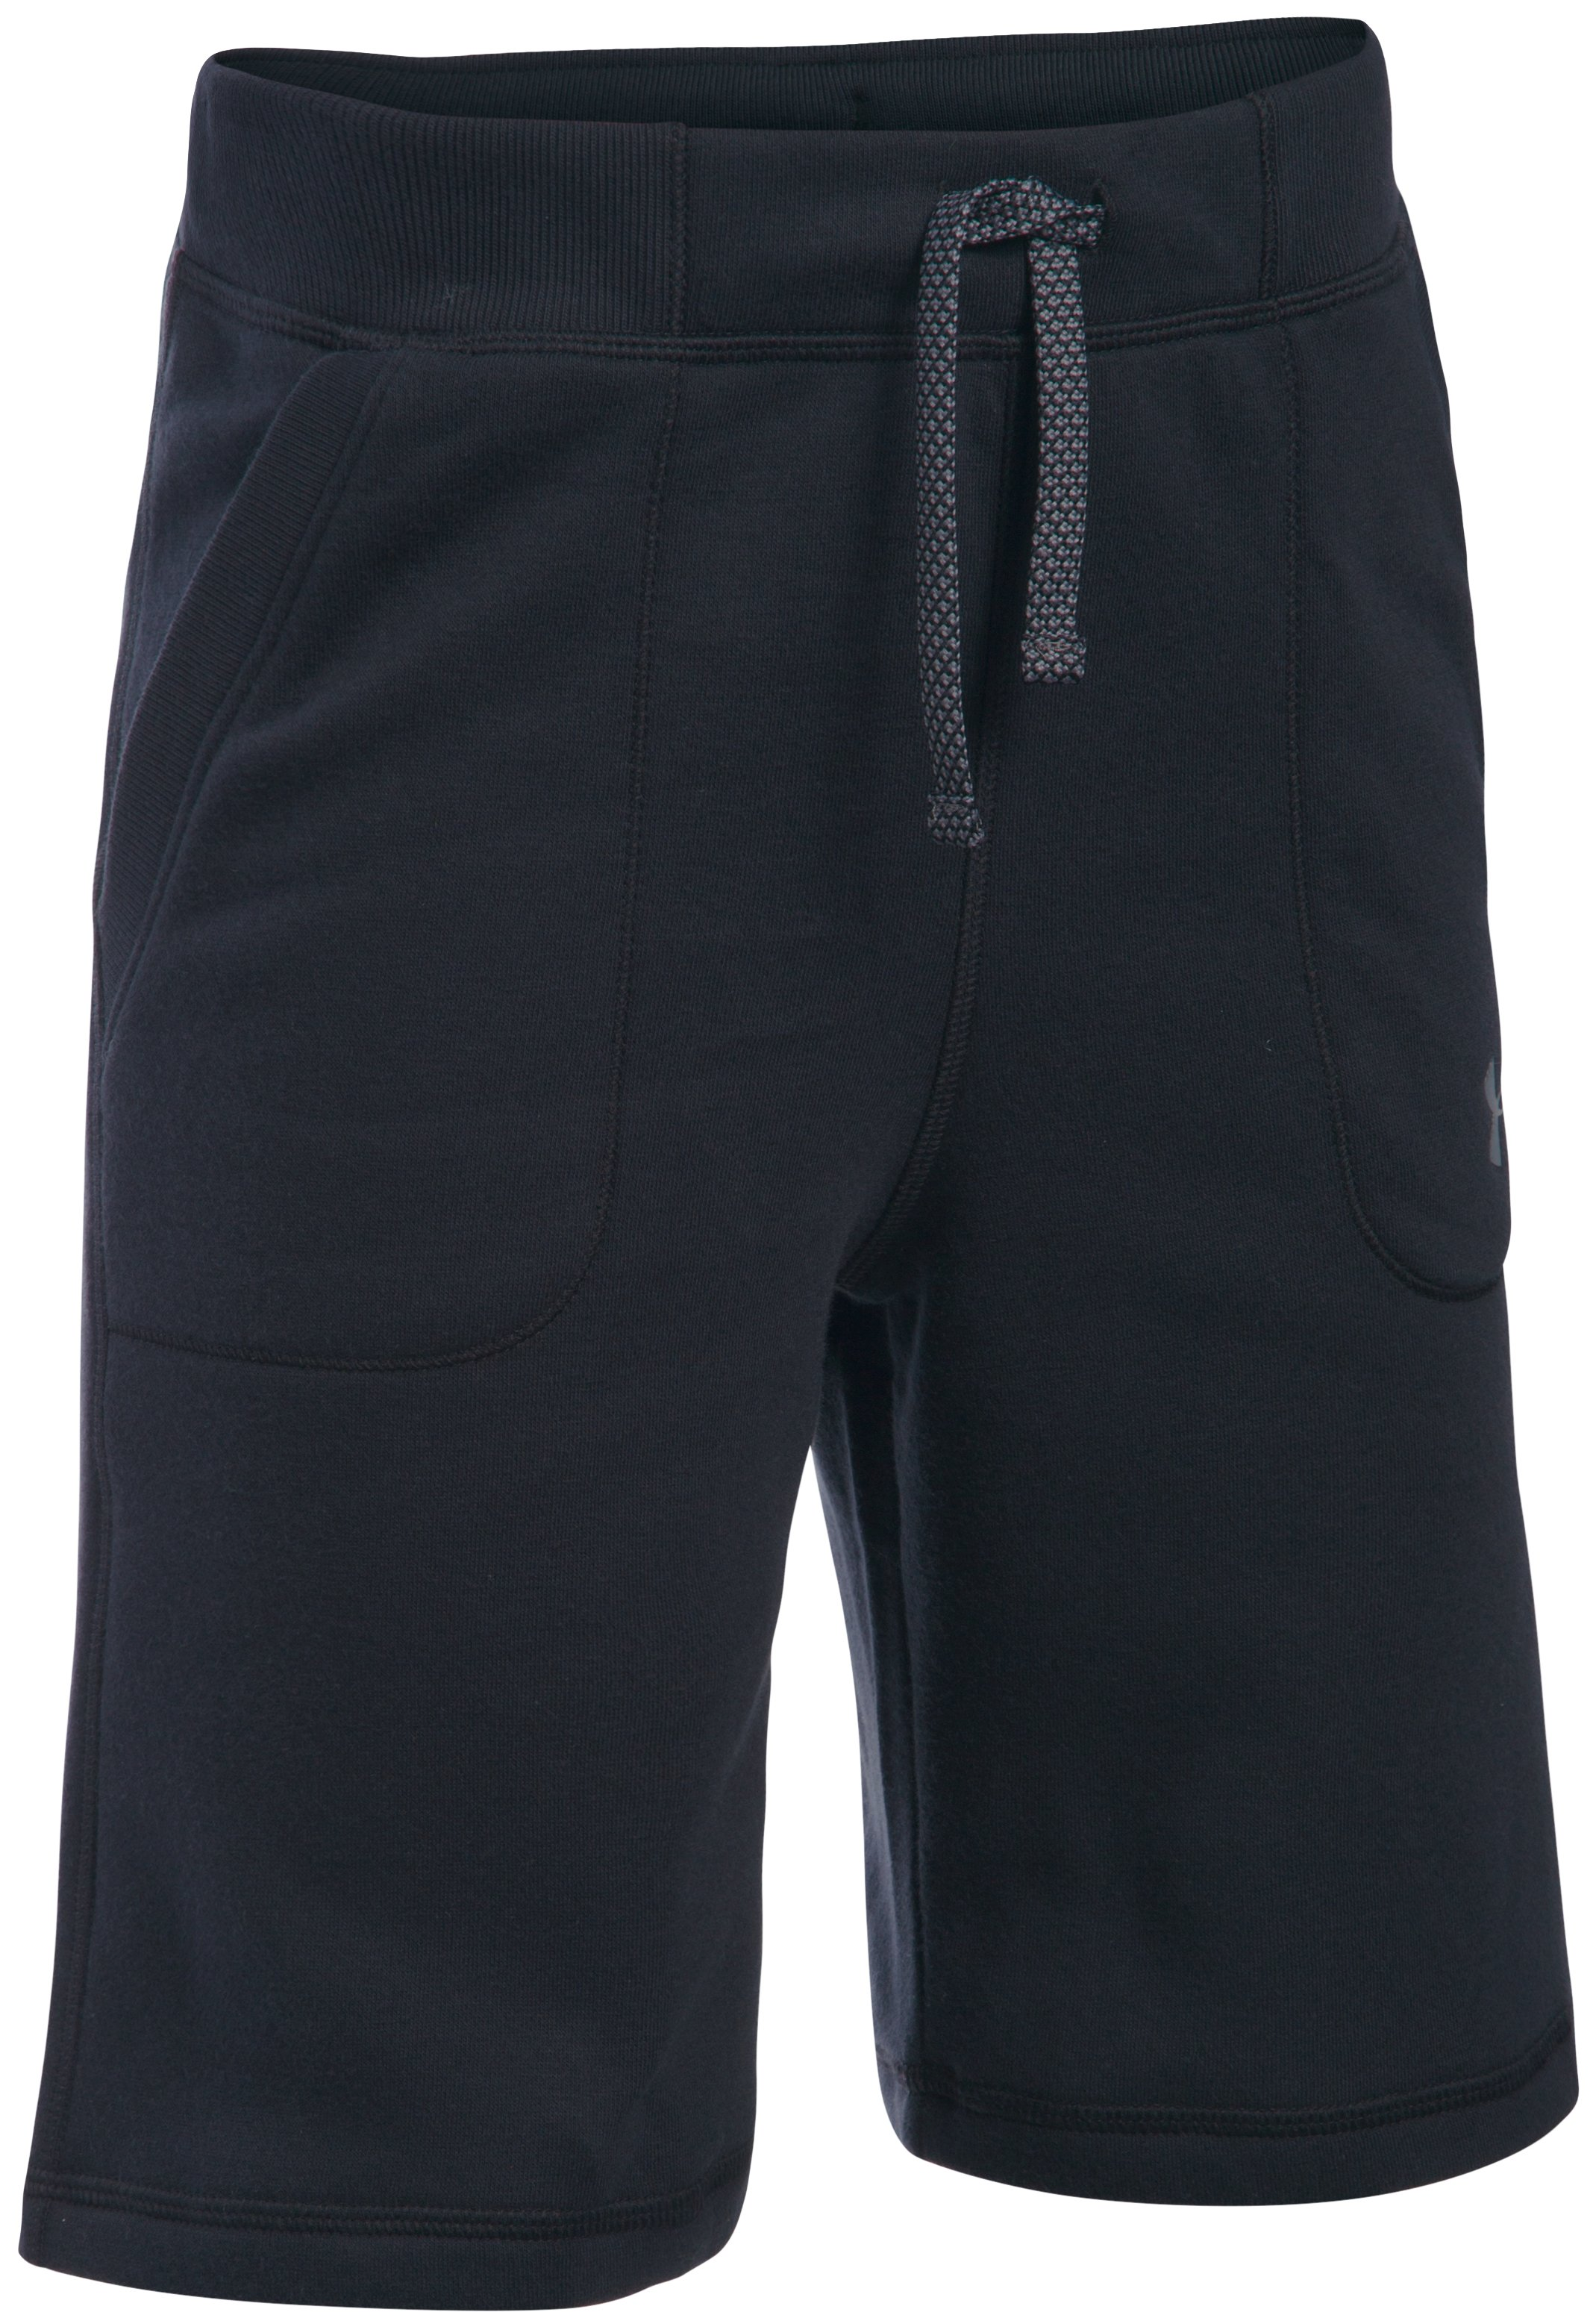 Boys' UA Titan Fleece Shorts, Black , undefined